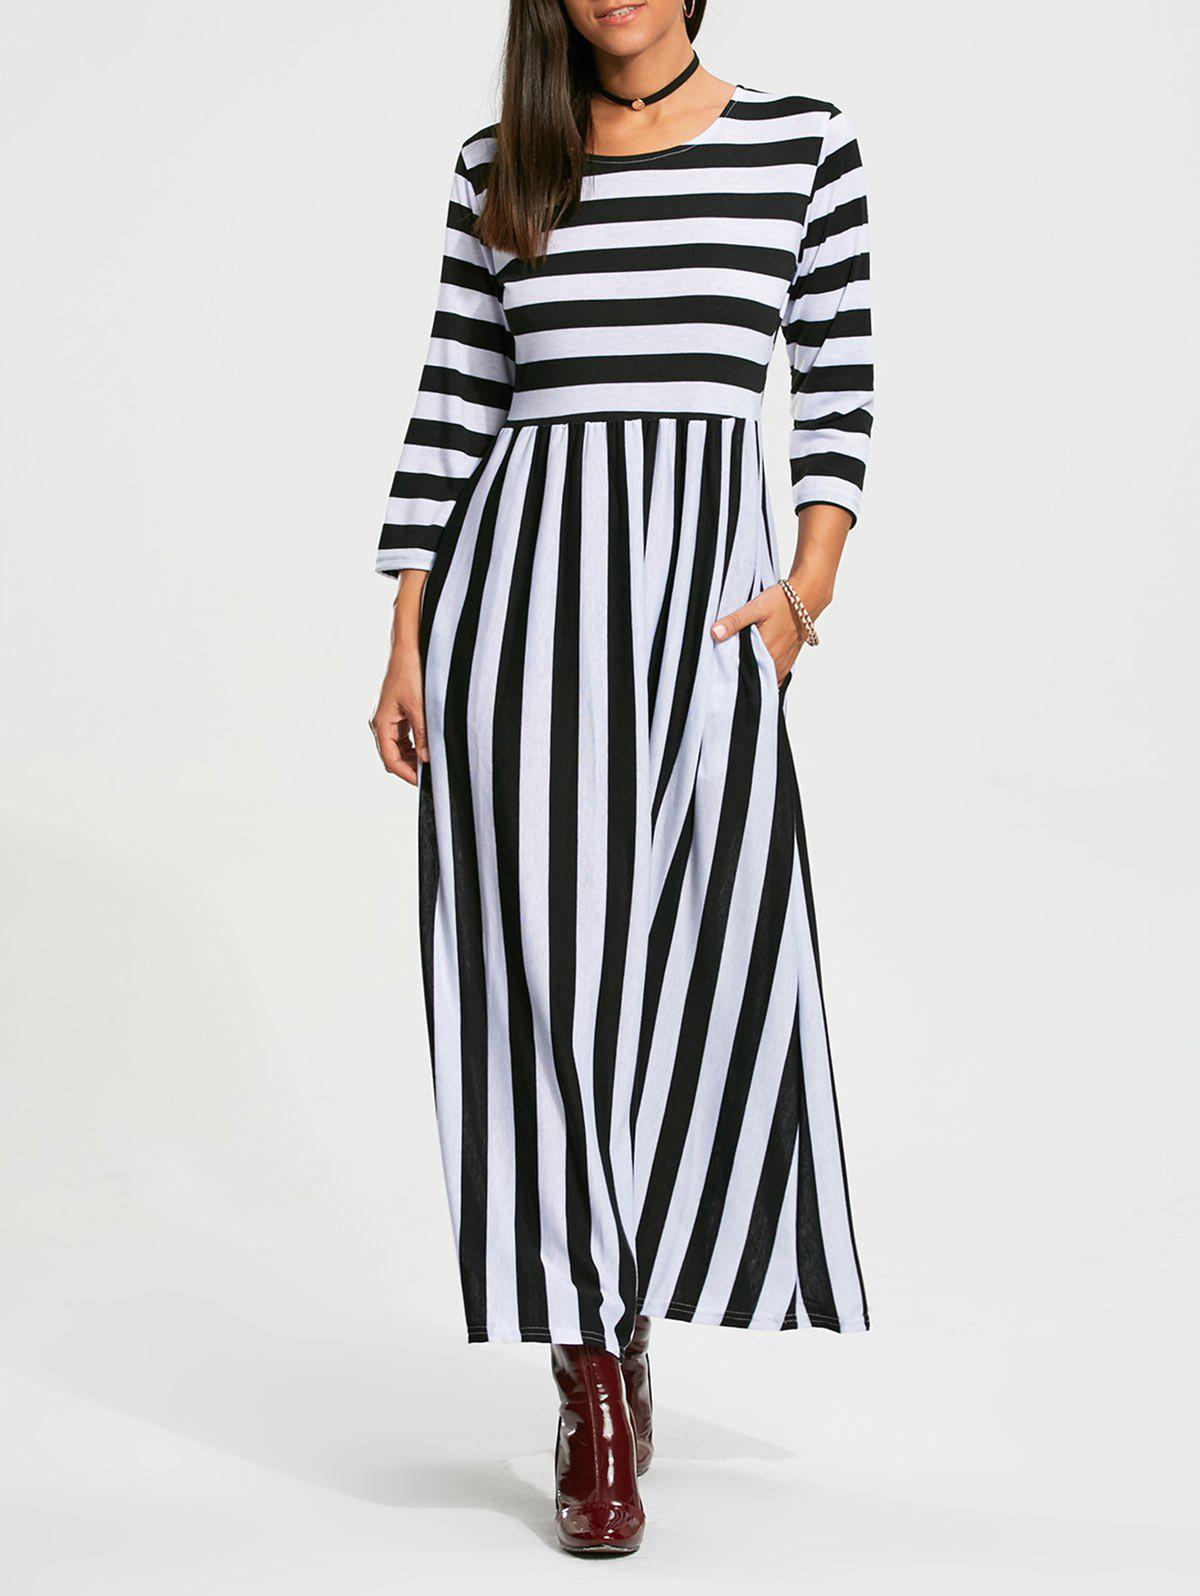 Stripe High Waist Maxi Dress with Pocket - Noir S